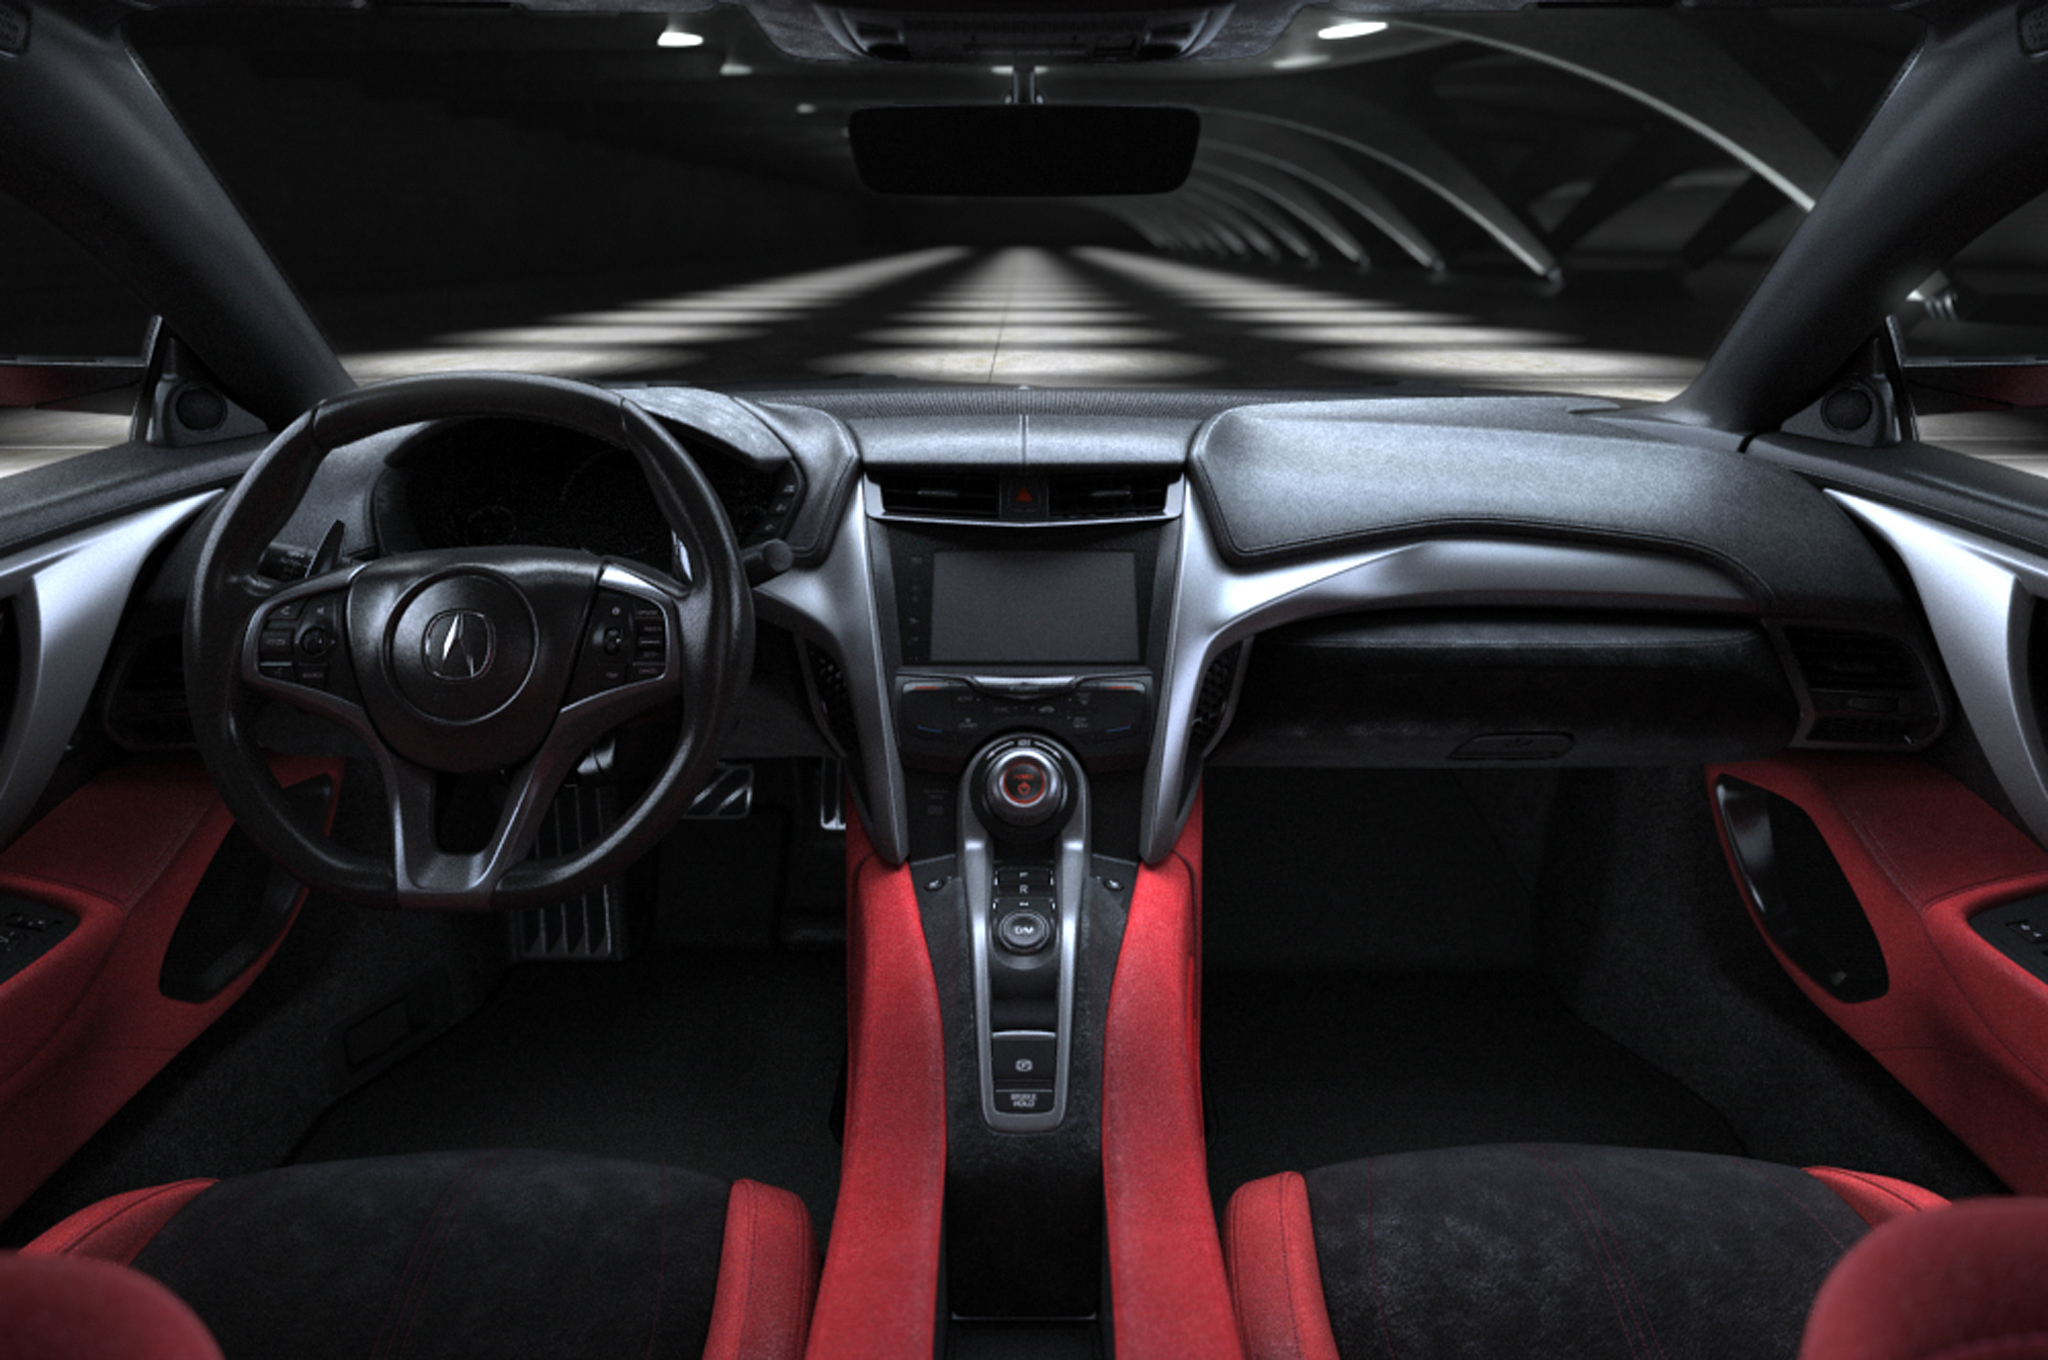 2016 acura nsx interior dashboard 1003 cars performance reviews and test drive. Black Bedroom Furniture Sets. Home Design Ideas